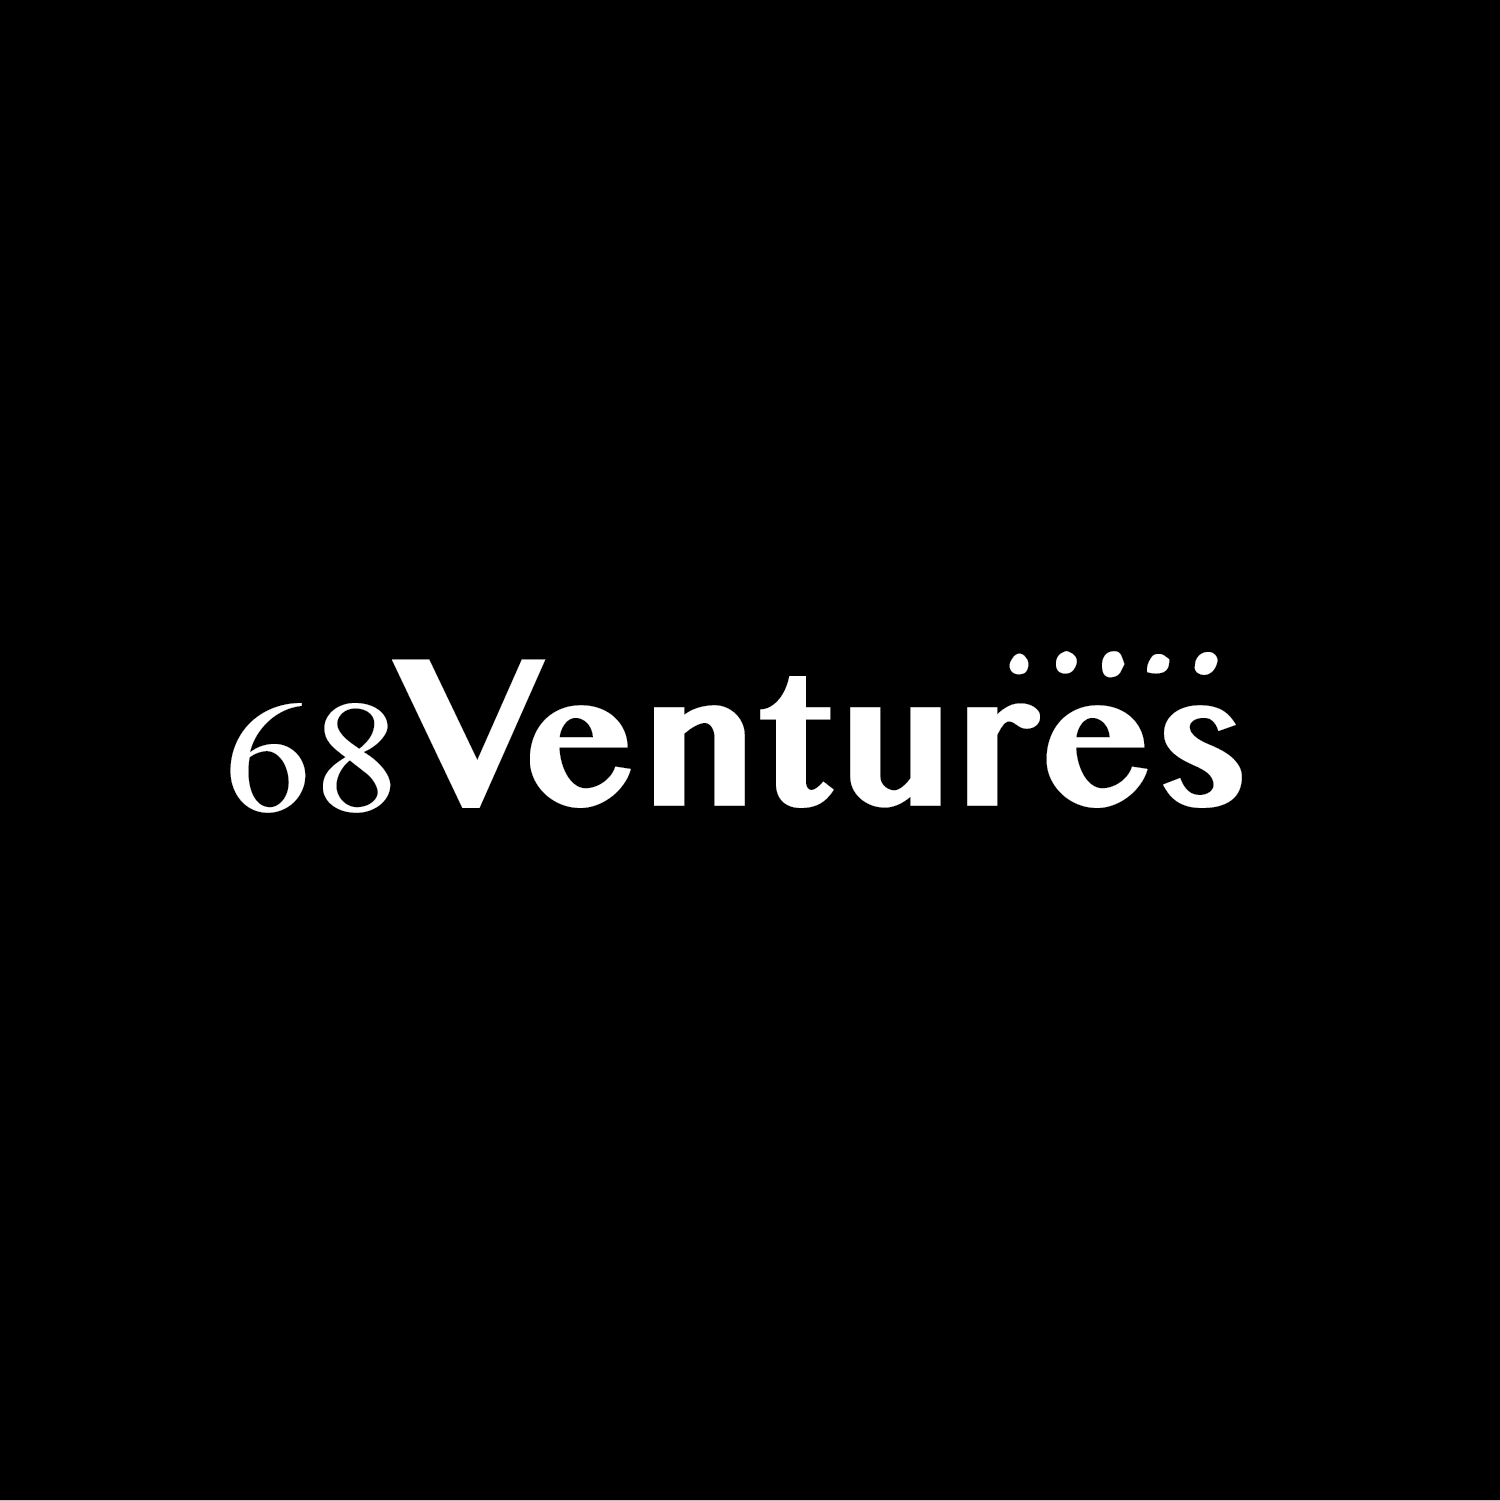 68Ventures_REV-updated font-blk bkgrd-01.png